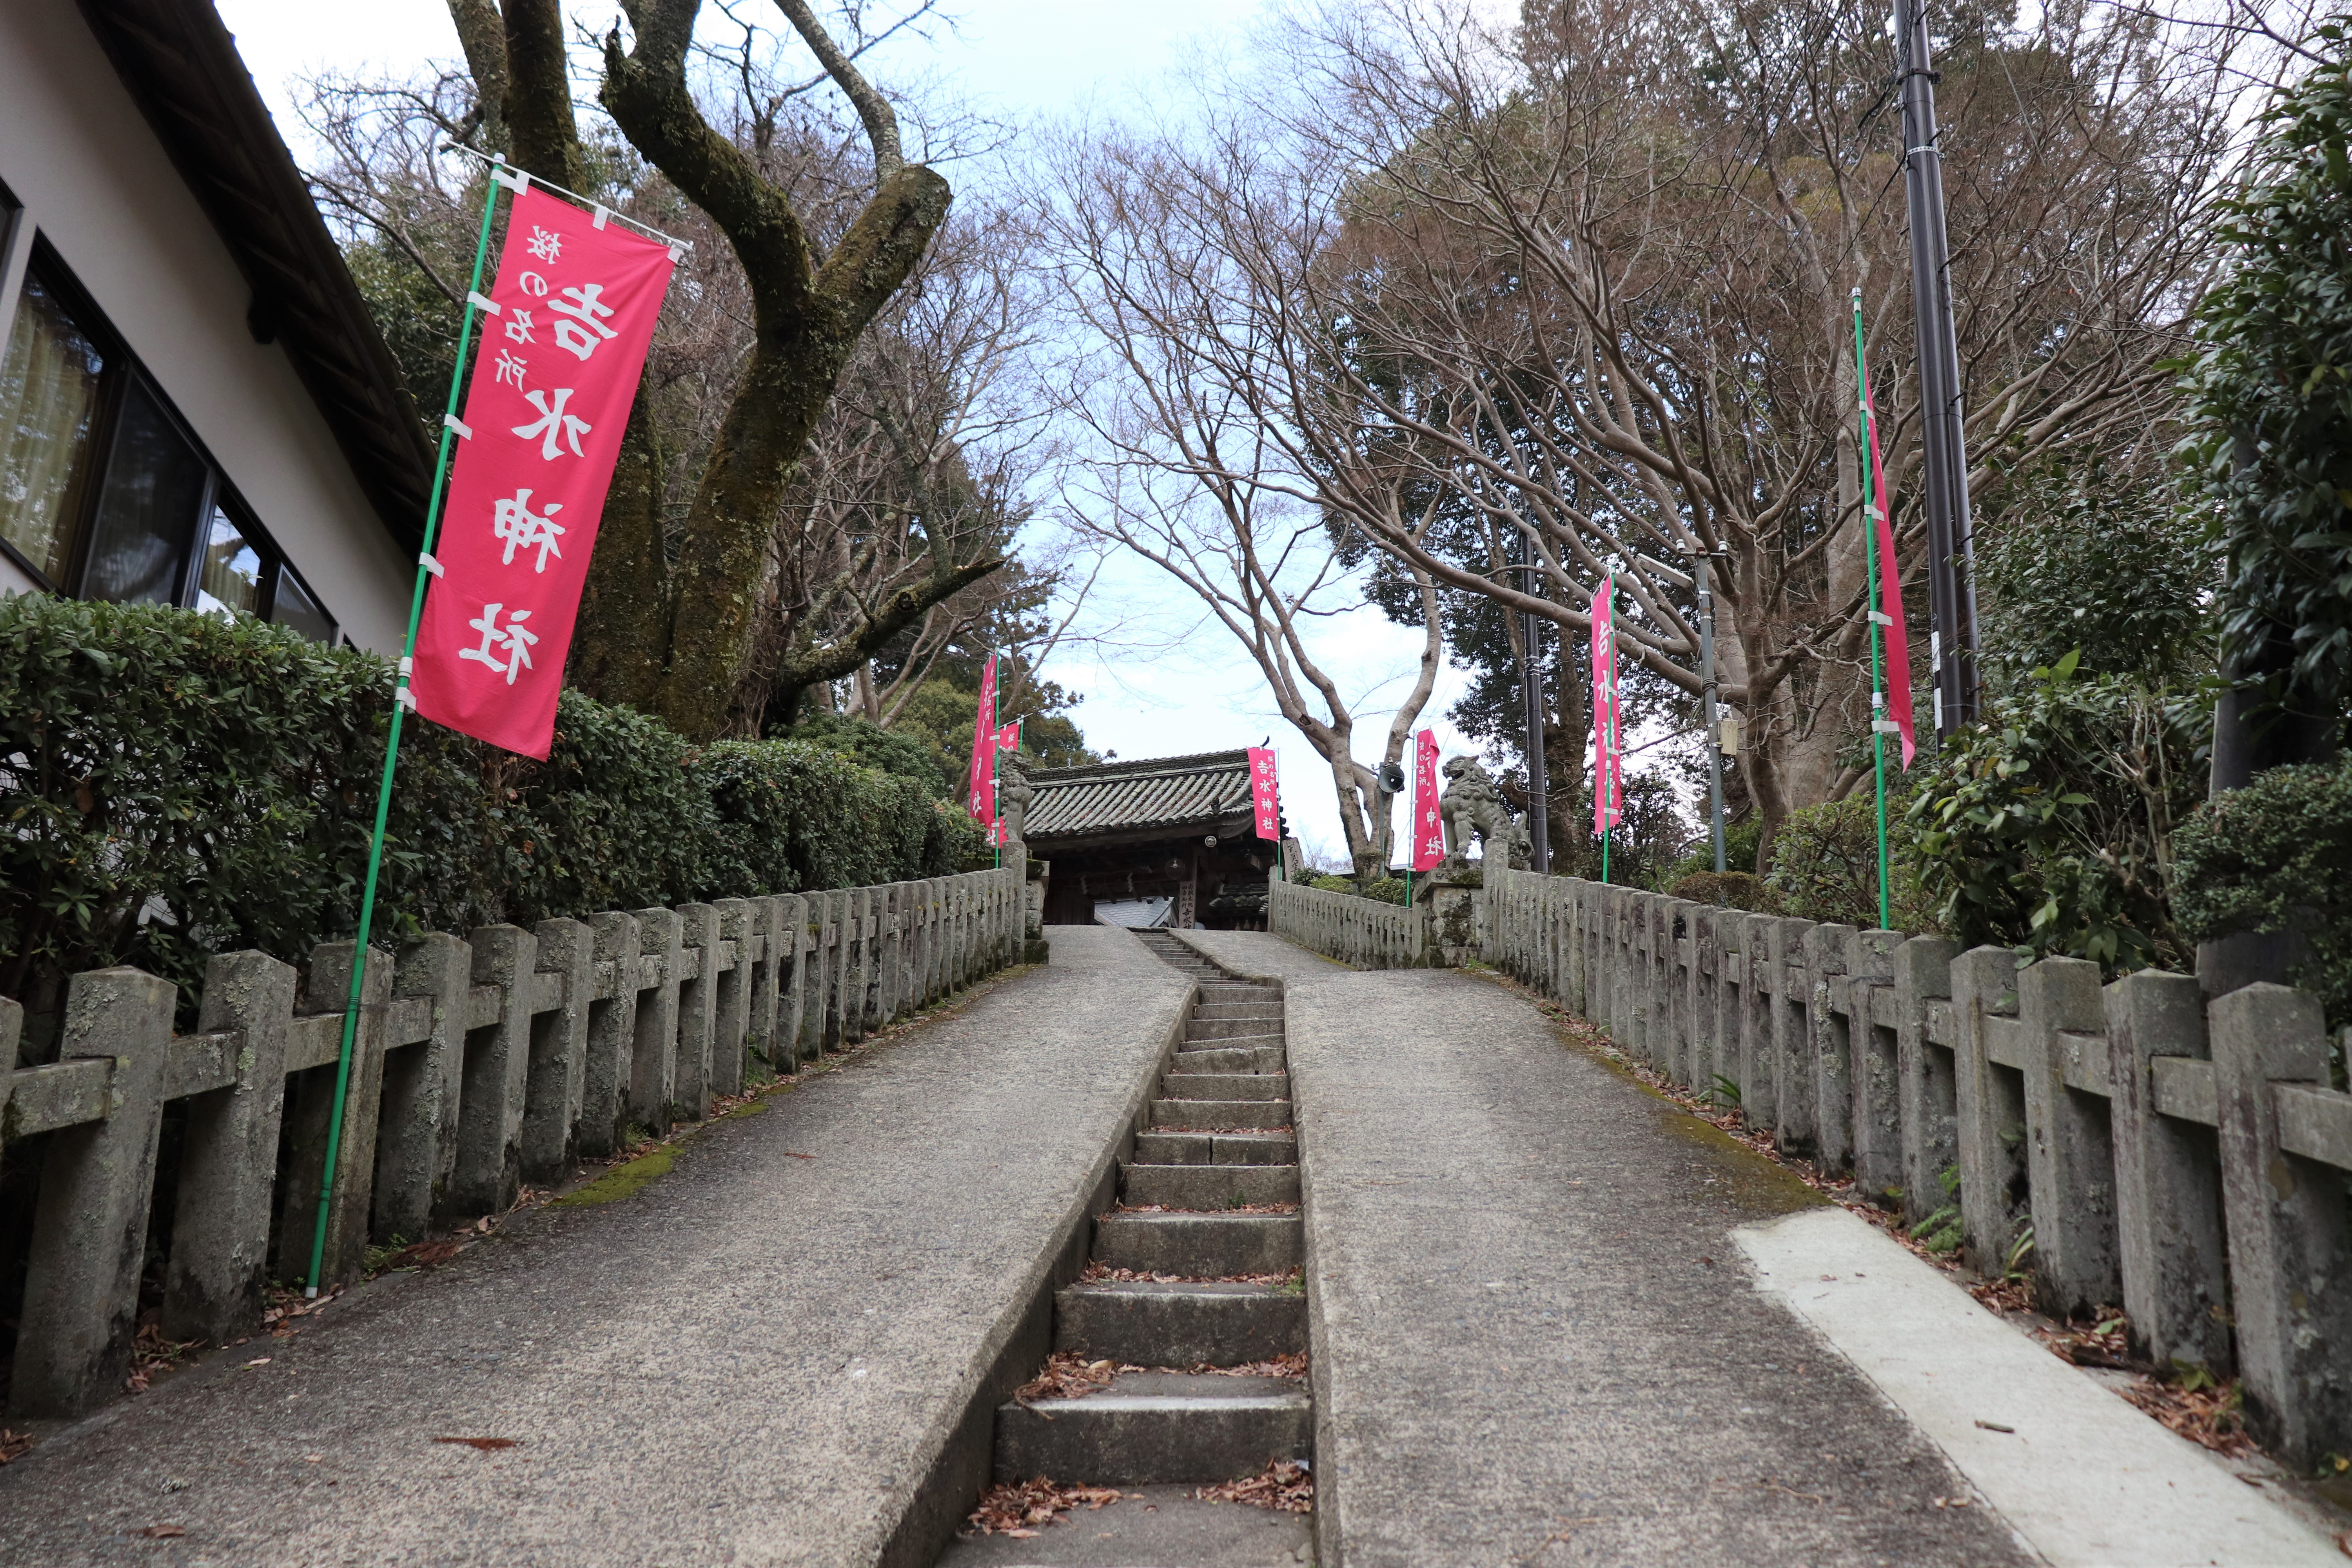 stone stairs leading up to the entrance of Yoshimizu shrine